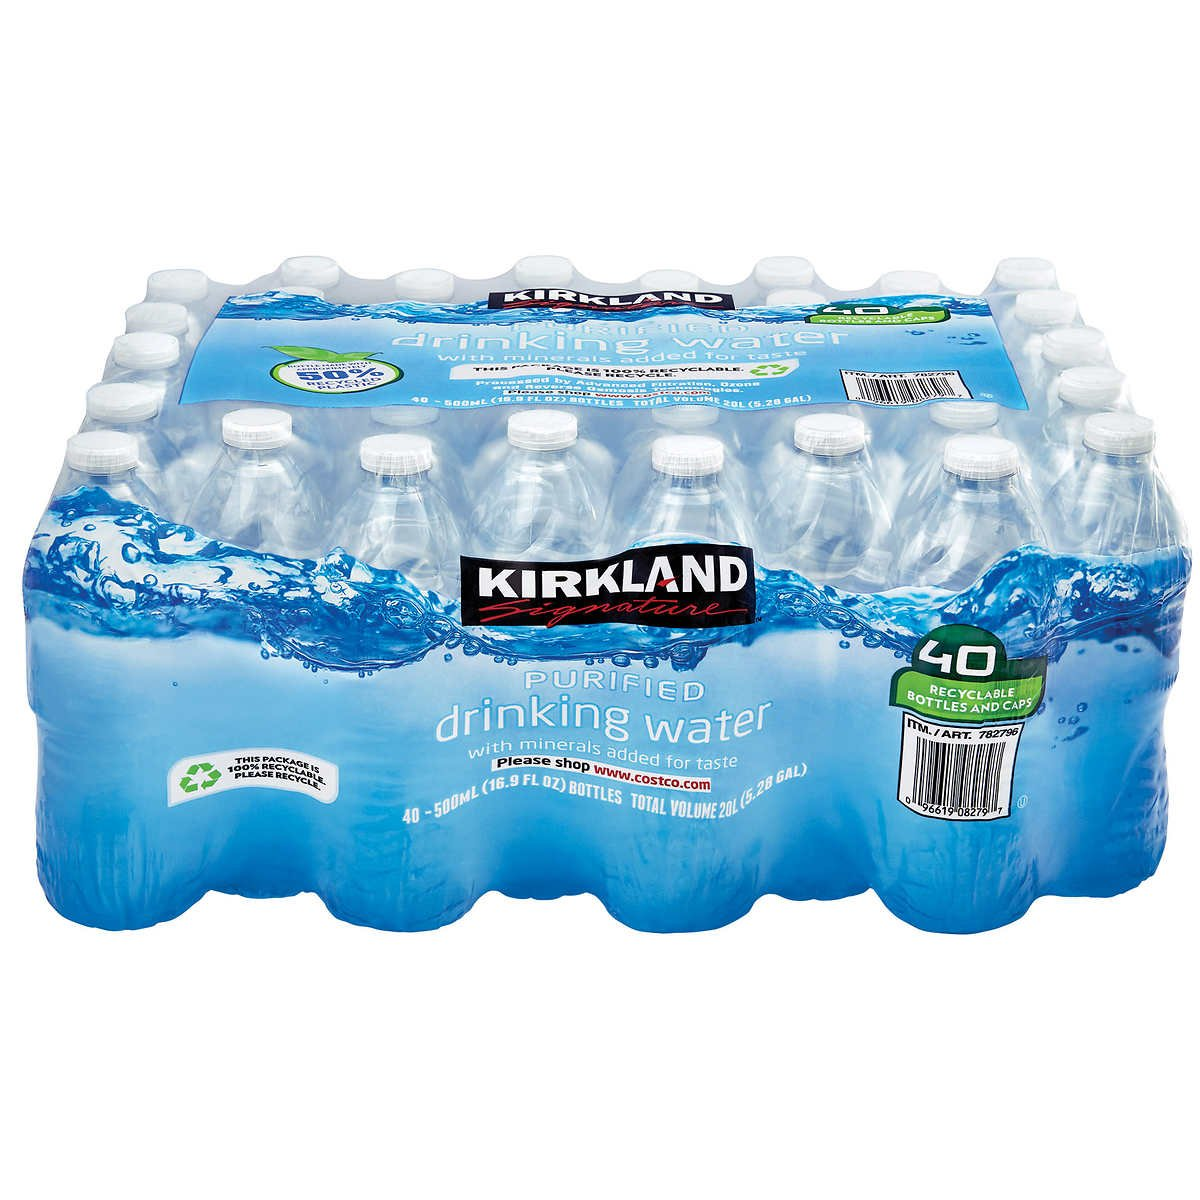 Kirkland Signature Purified Drinking Water, 16 9 Ounce